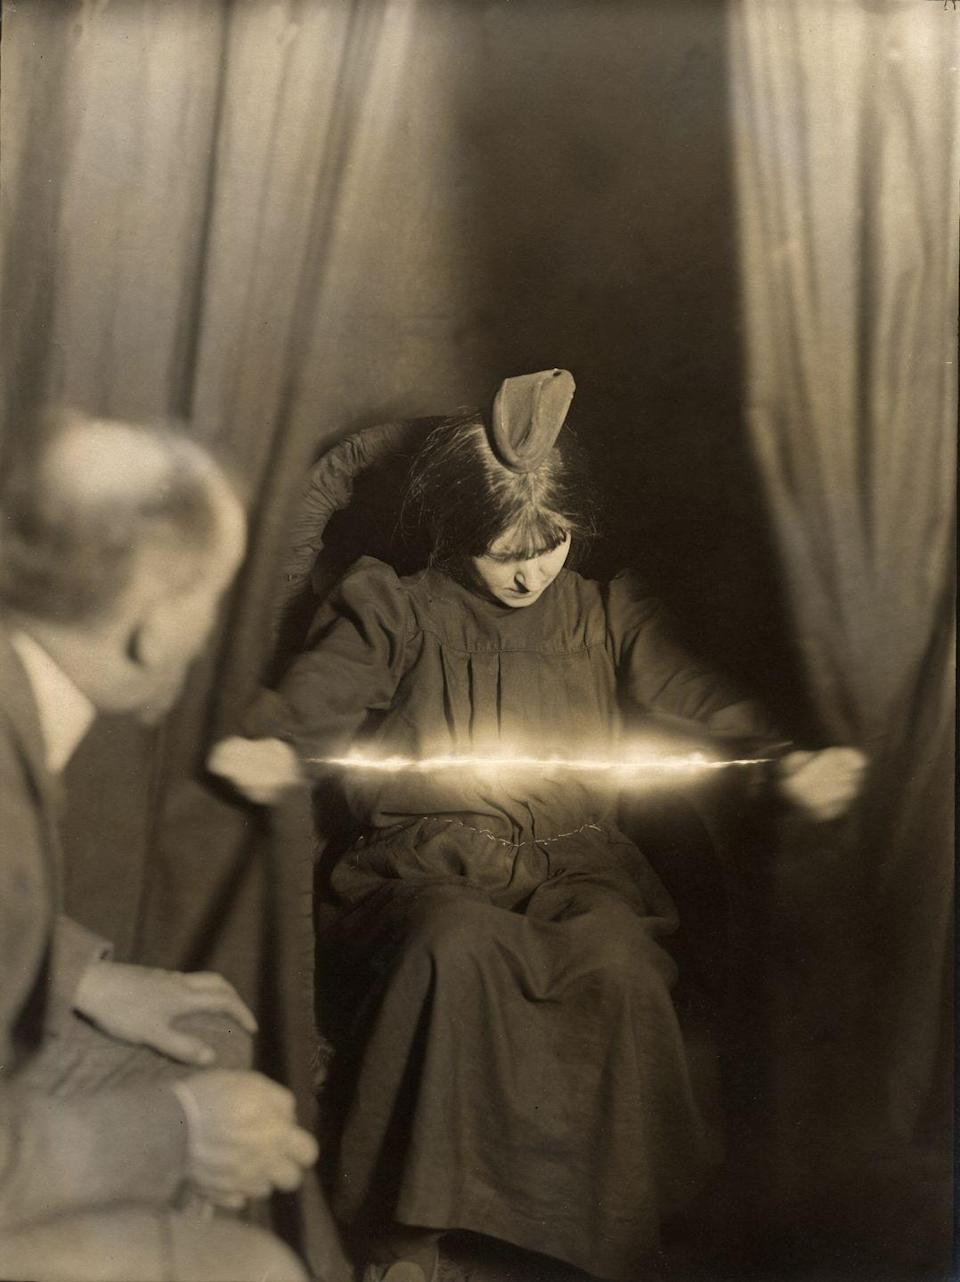 """<p>A spiritual medium, Eva Carriere, holds a glowing rod with both of her hands during a spiritual seance. According to the book <em>A Magician Among the Spirits</em>, at the turn of the 20th century, <a href=""""https://www.cambridge.org/core/books/magician-among-the-spirits/287B6F1D1986740CAC42E55B1D60792C"""" rel=""""nofollow noopener"""" target=""""_blank"""" data-ylk=""""slk:Carriere was a popular medium who was even observed by magician Harry Houdini"""" class=""""link rapid-noclick-resp"""">Carriere was a popular medium who was even observed by magician Harry Houdini</a>, in an attempt to pick up a few of her tricks.</p>"""